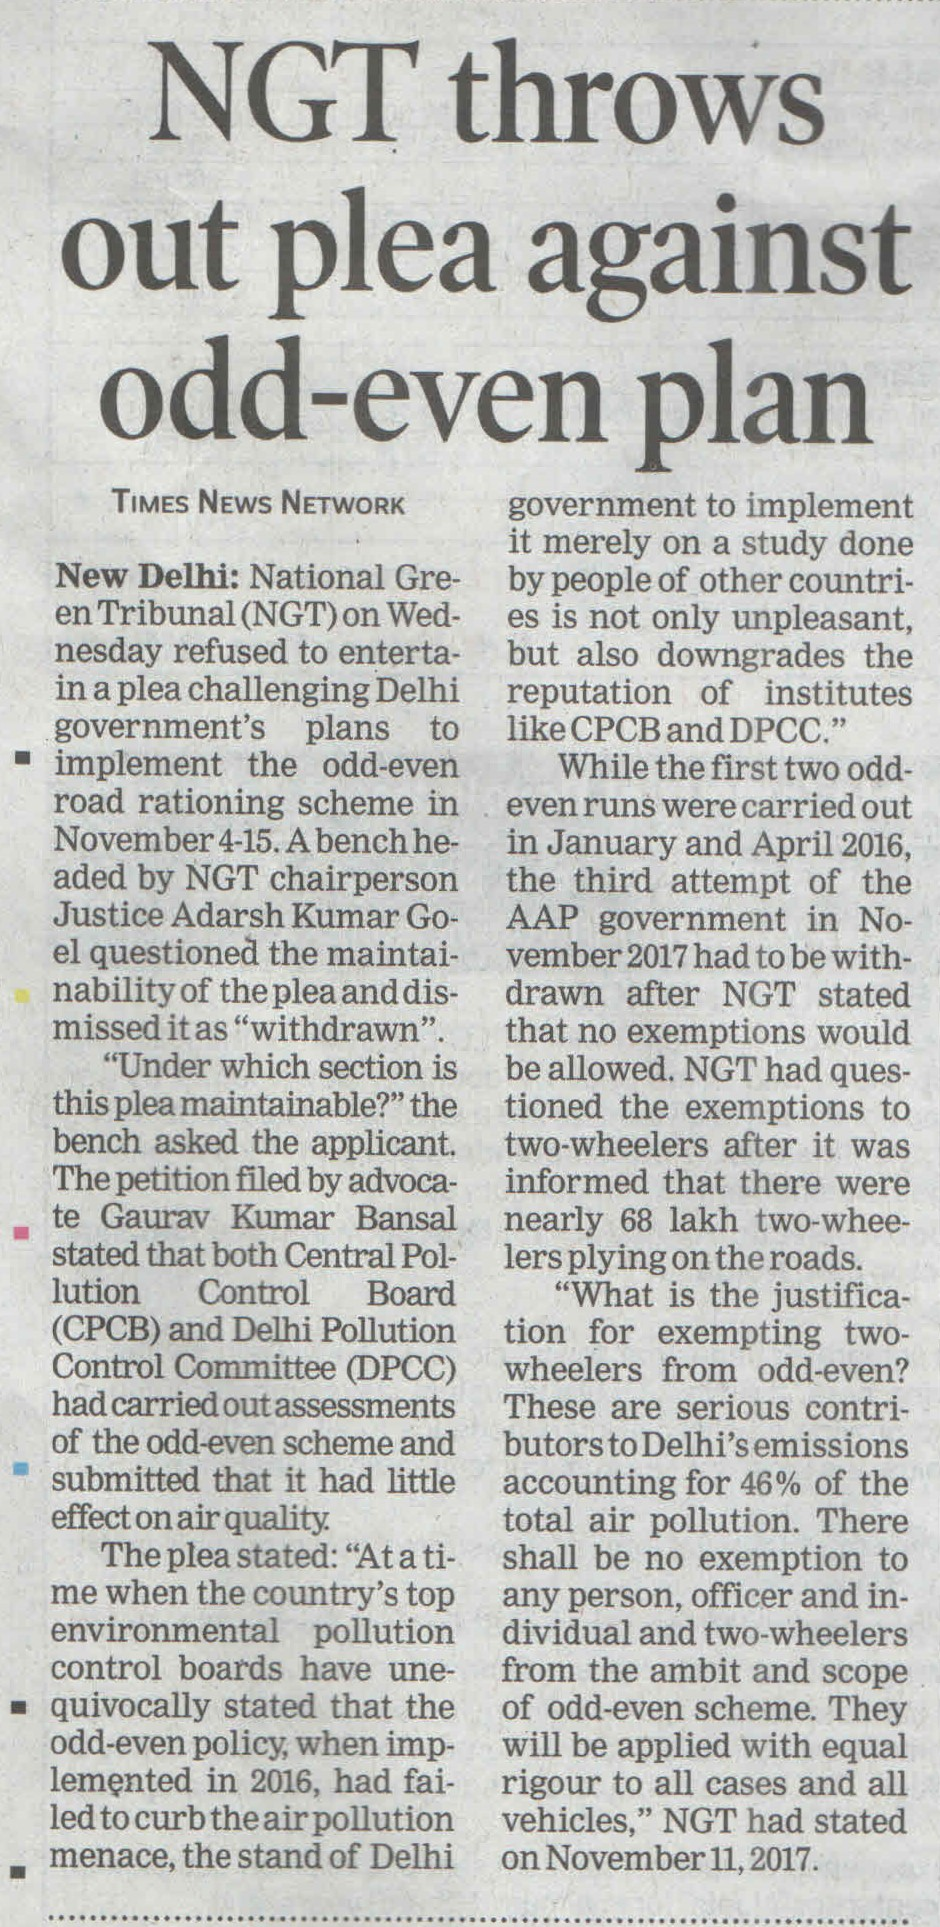 NGT throws out plea against odd-even plan